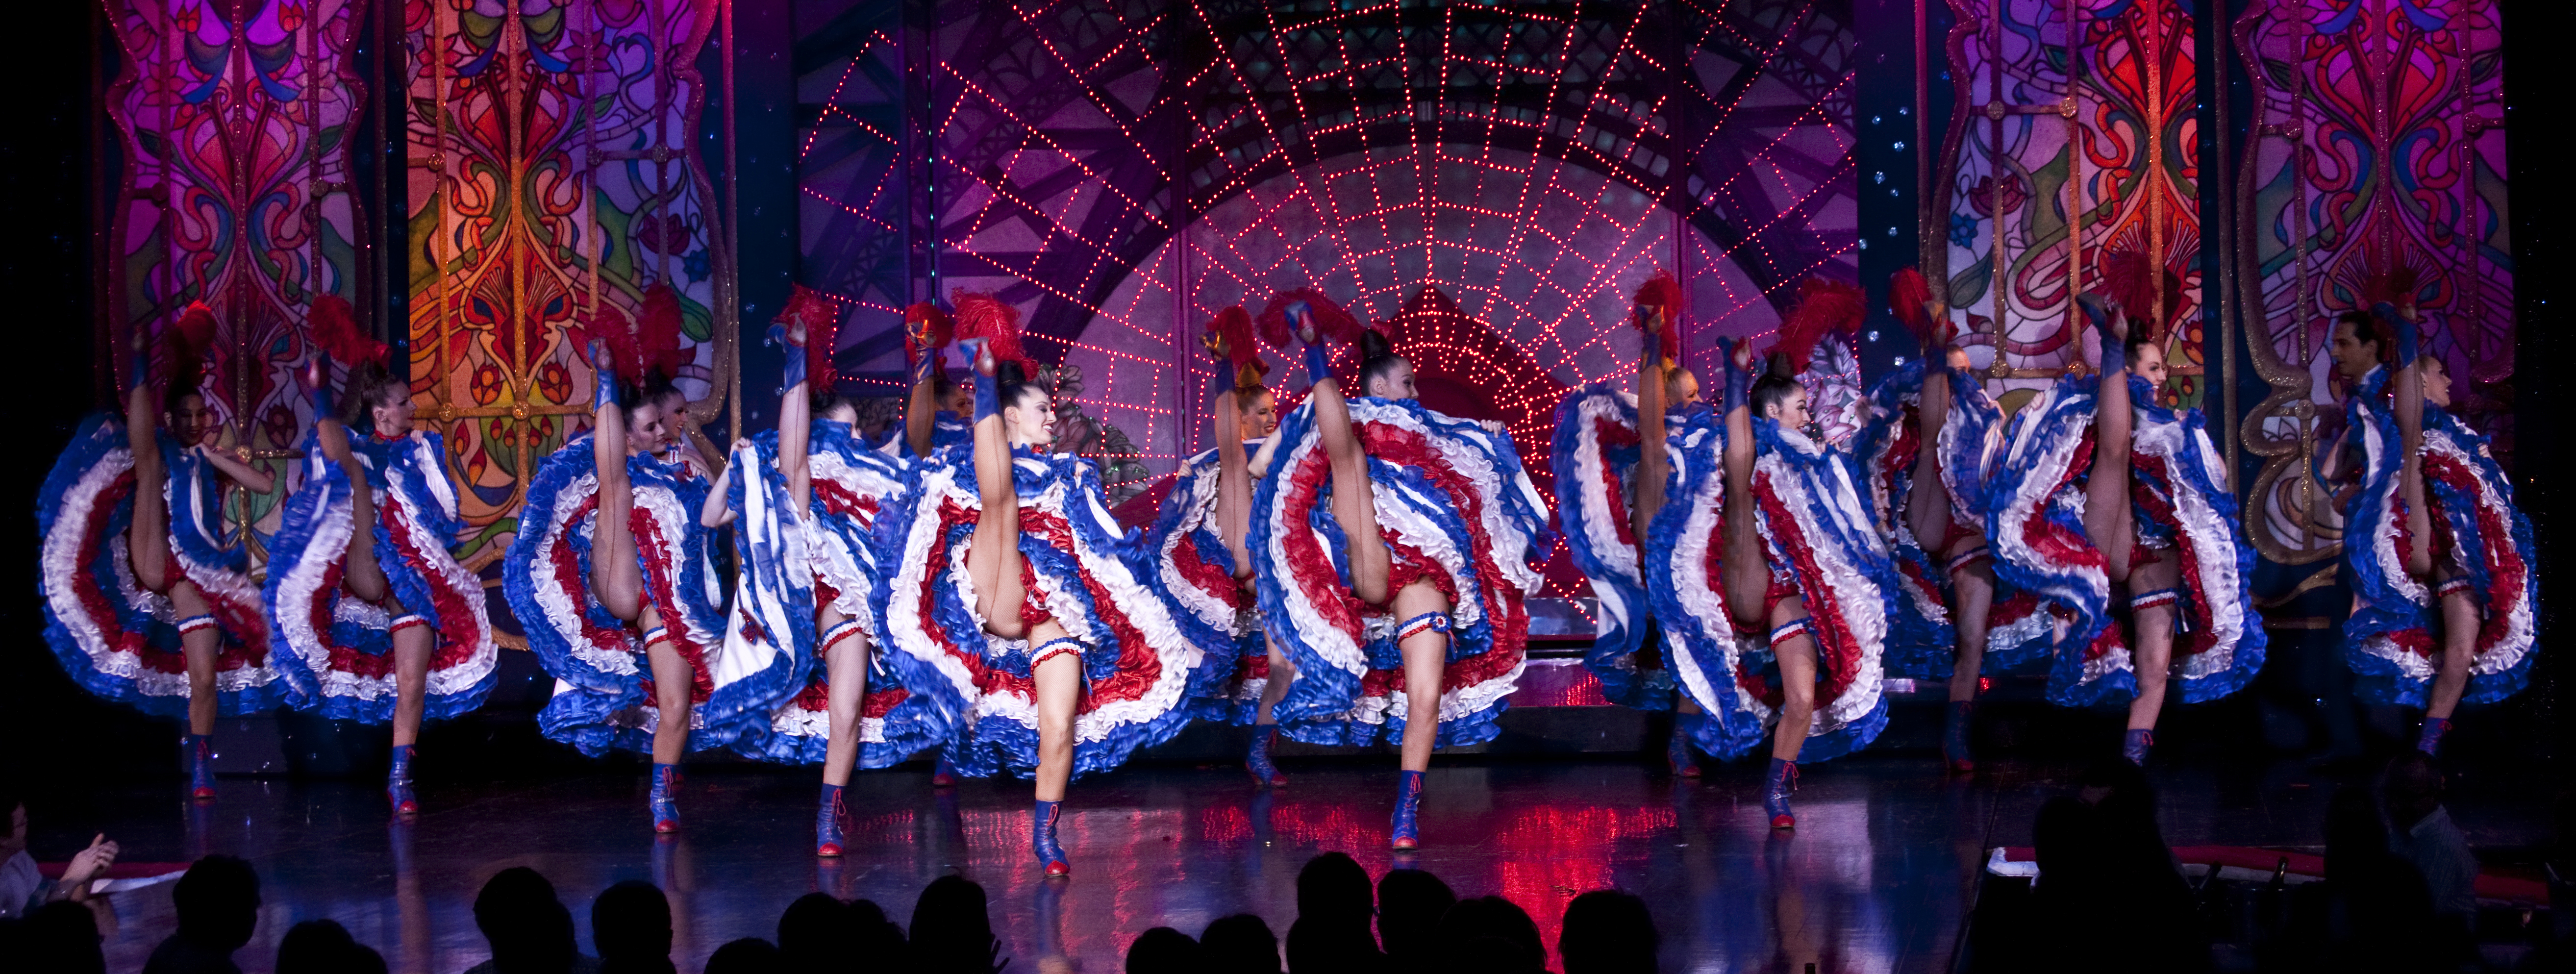 Nice wallpapers Moulin Rouge! 5255x1987px